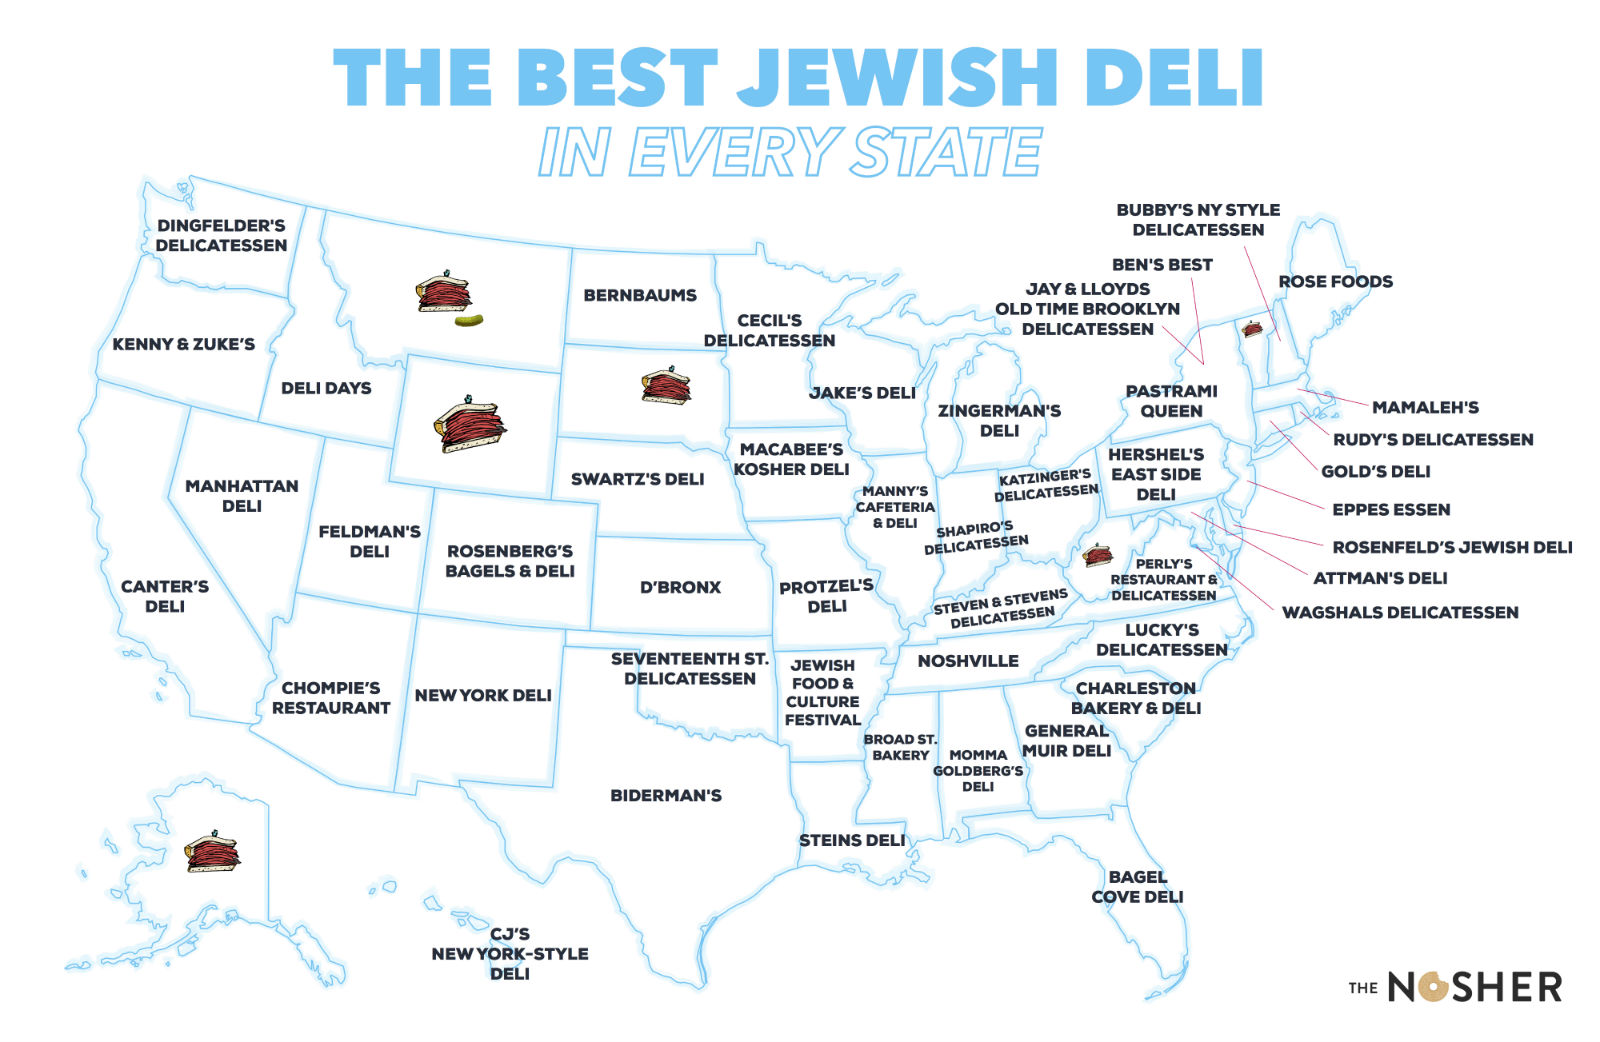 This Map Shows the Best Jewish Deli in Every State | The Nosher